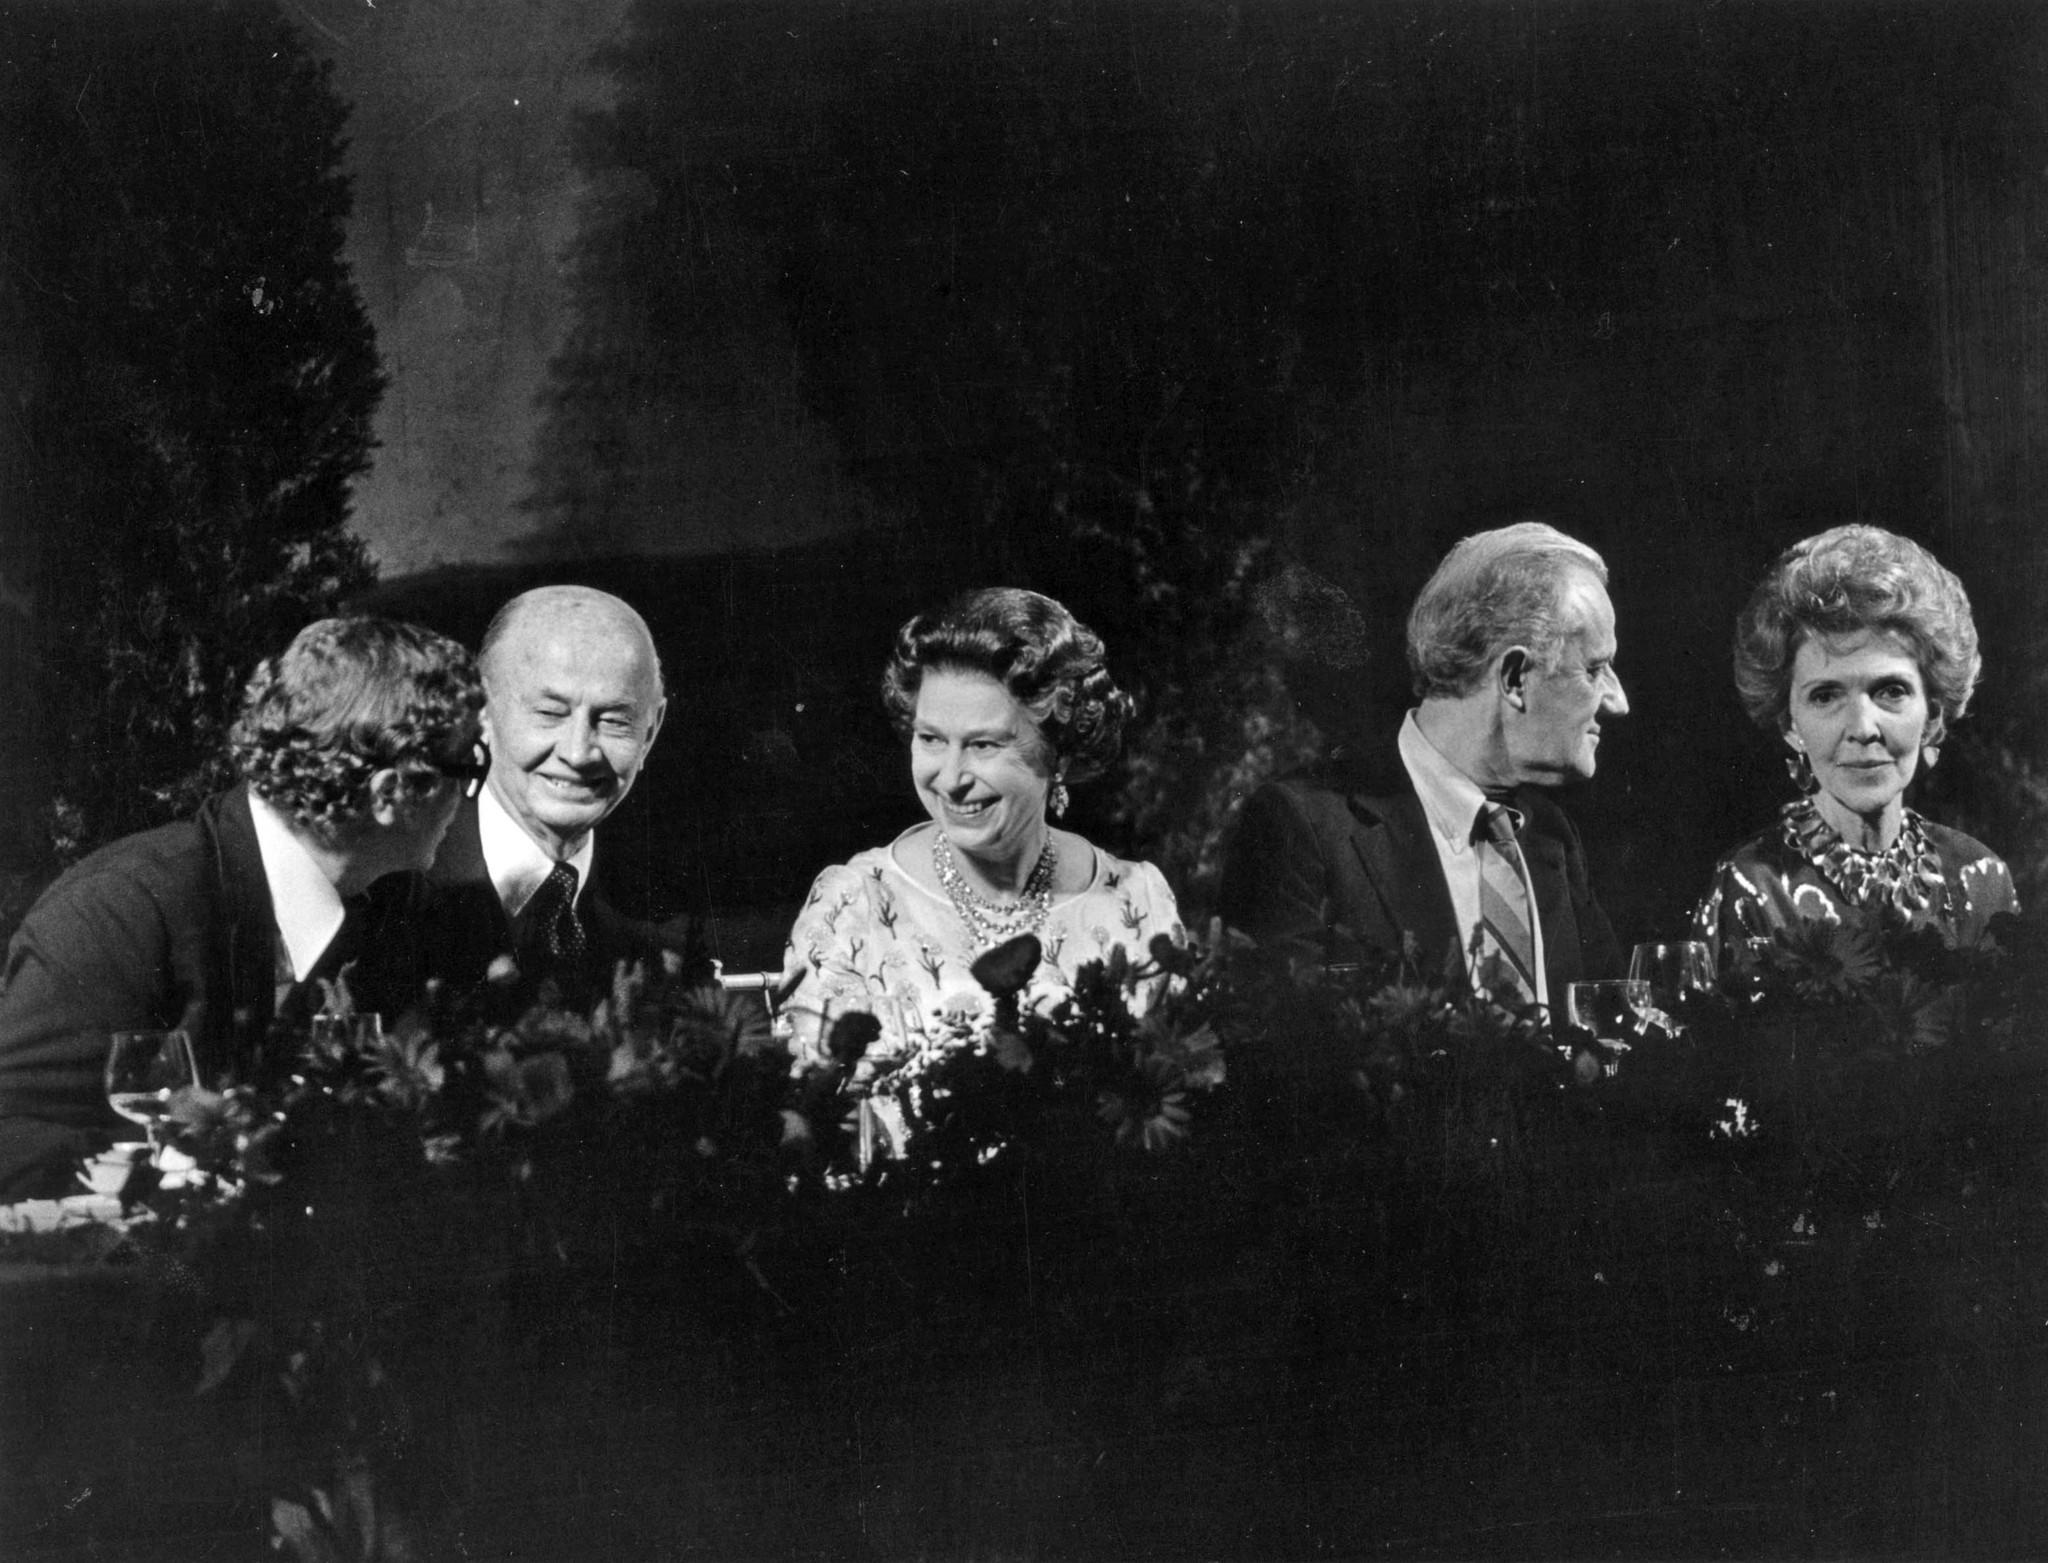 Feb. 27, 1983: During banquet at 20th CenturyFox's Sound Stage 9, Queen Elizabeth II, center, jokes with actor Michael Caine, left. On the right is Tony Richardson and Nancy Reagan. Holmes Tuttle sits between Caine and the queen. This photo was published in the March 1, 1983, Los Angeles Times View section.